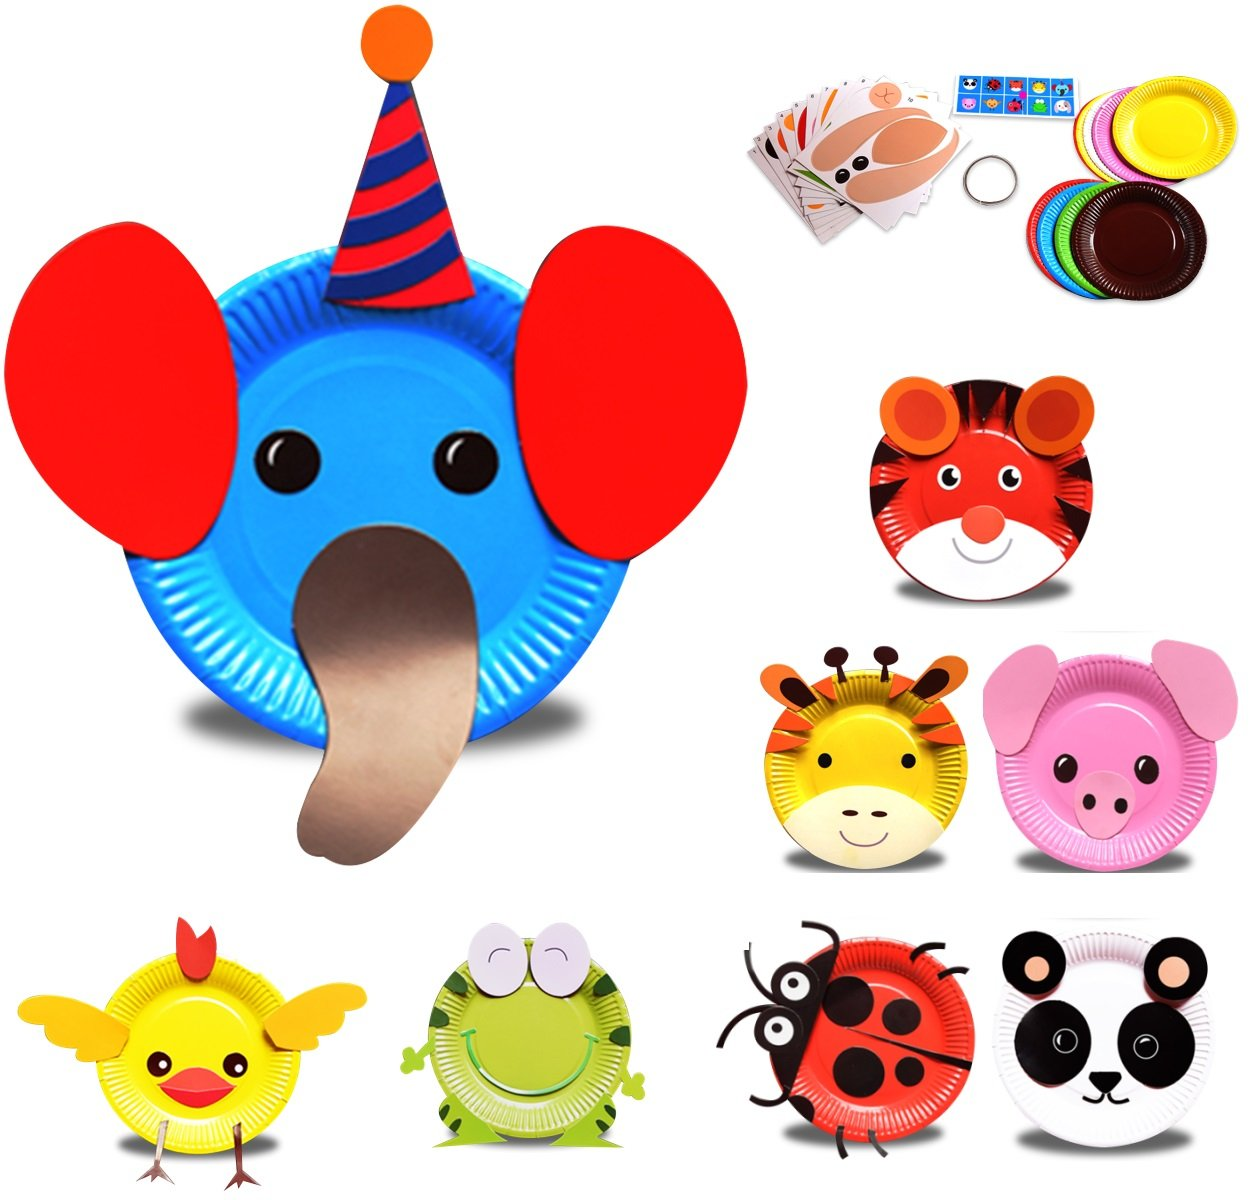 Mini Factory Kids Early Learning Education Play DIY Cute Animal Creative Paper Plates Art Kit 8Pcs